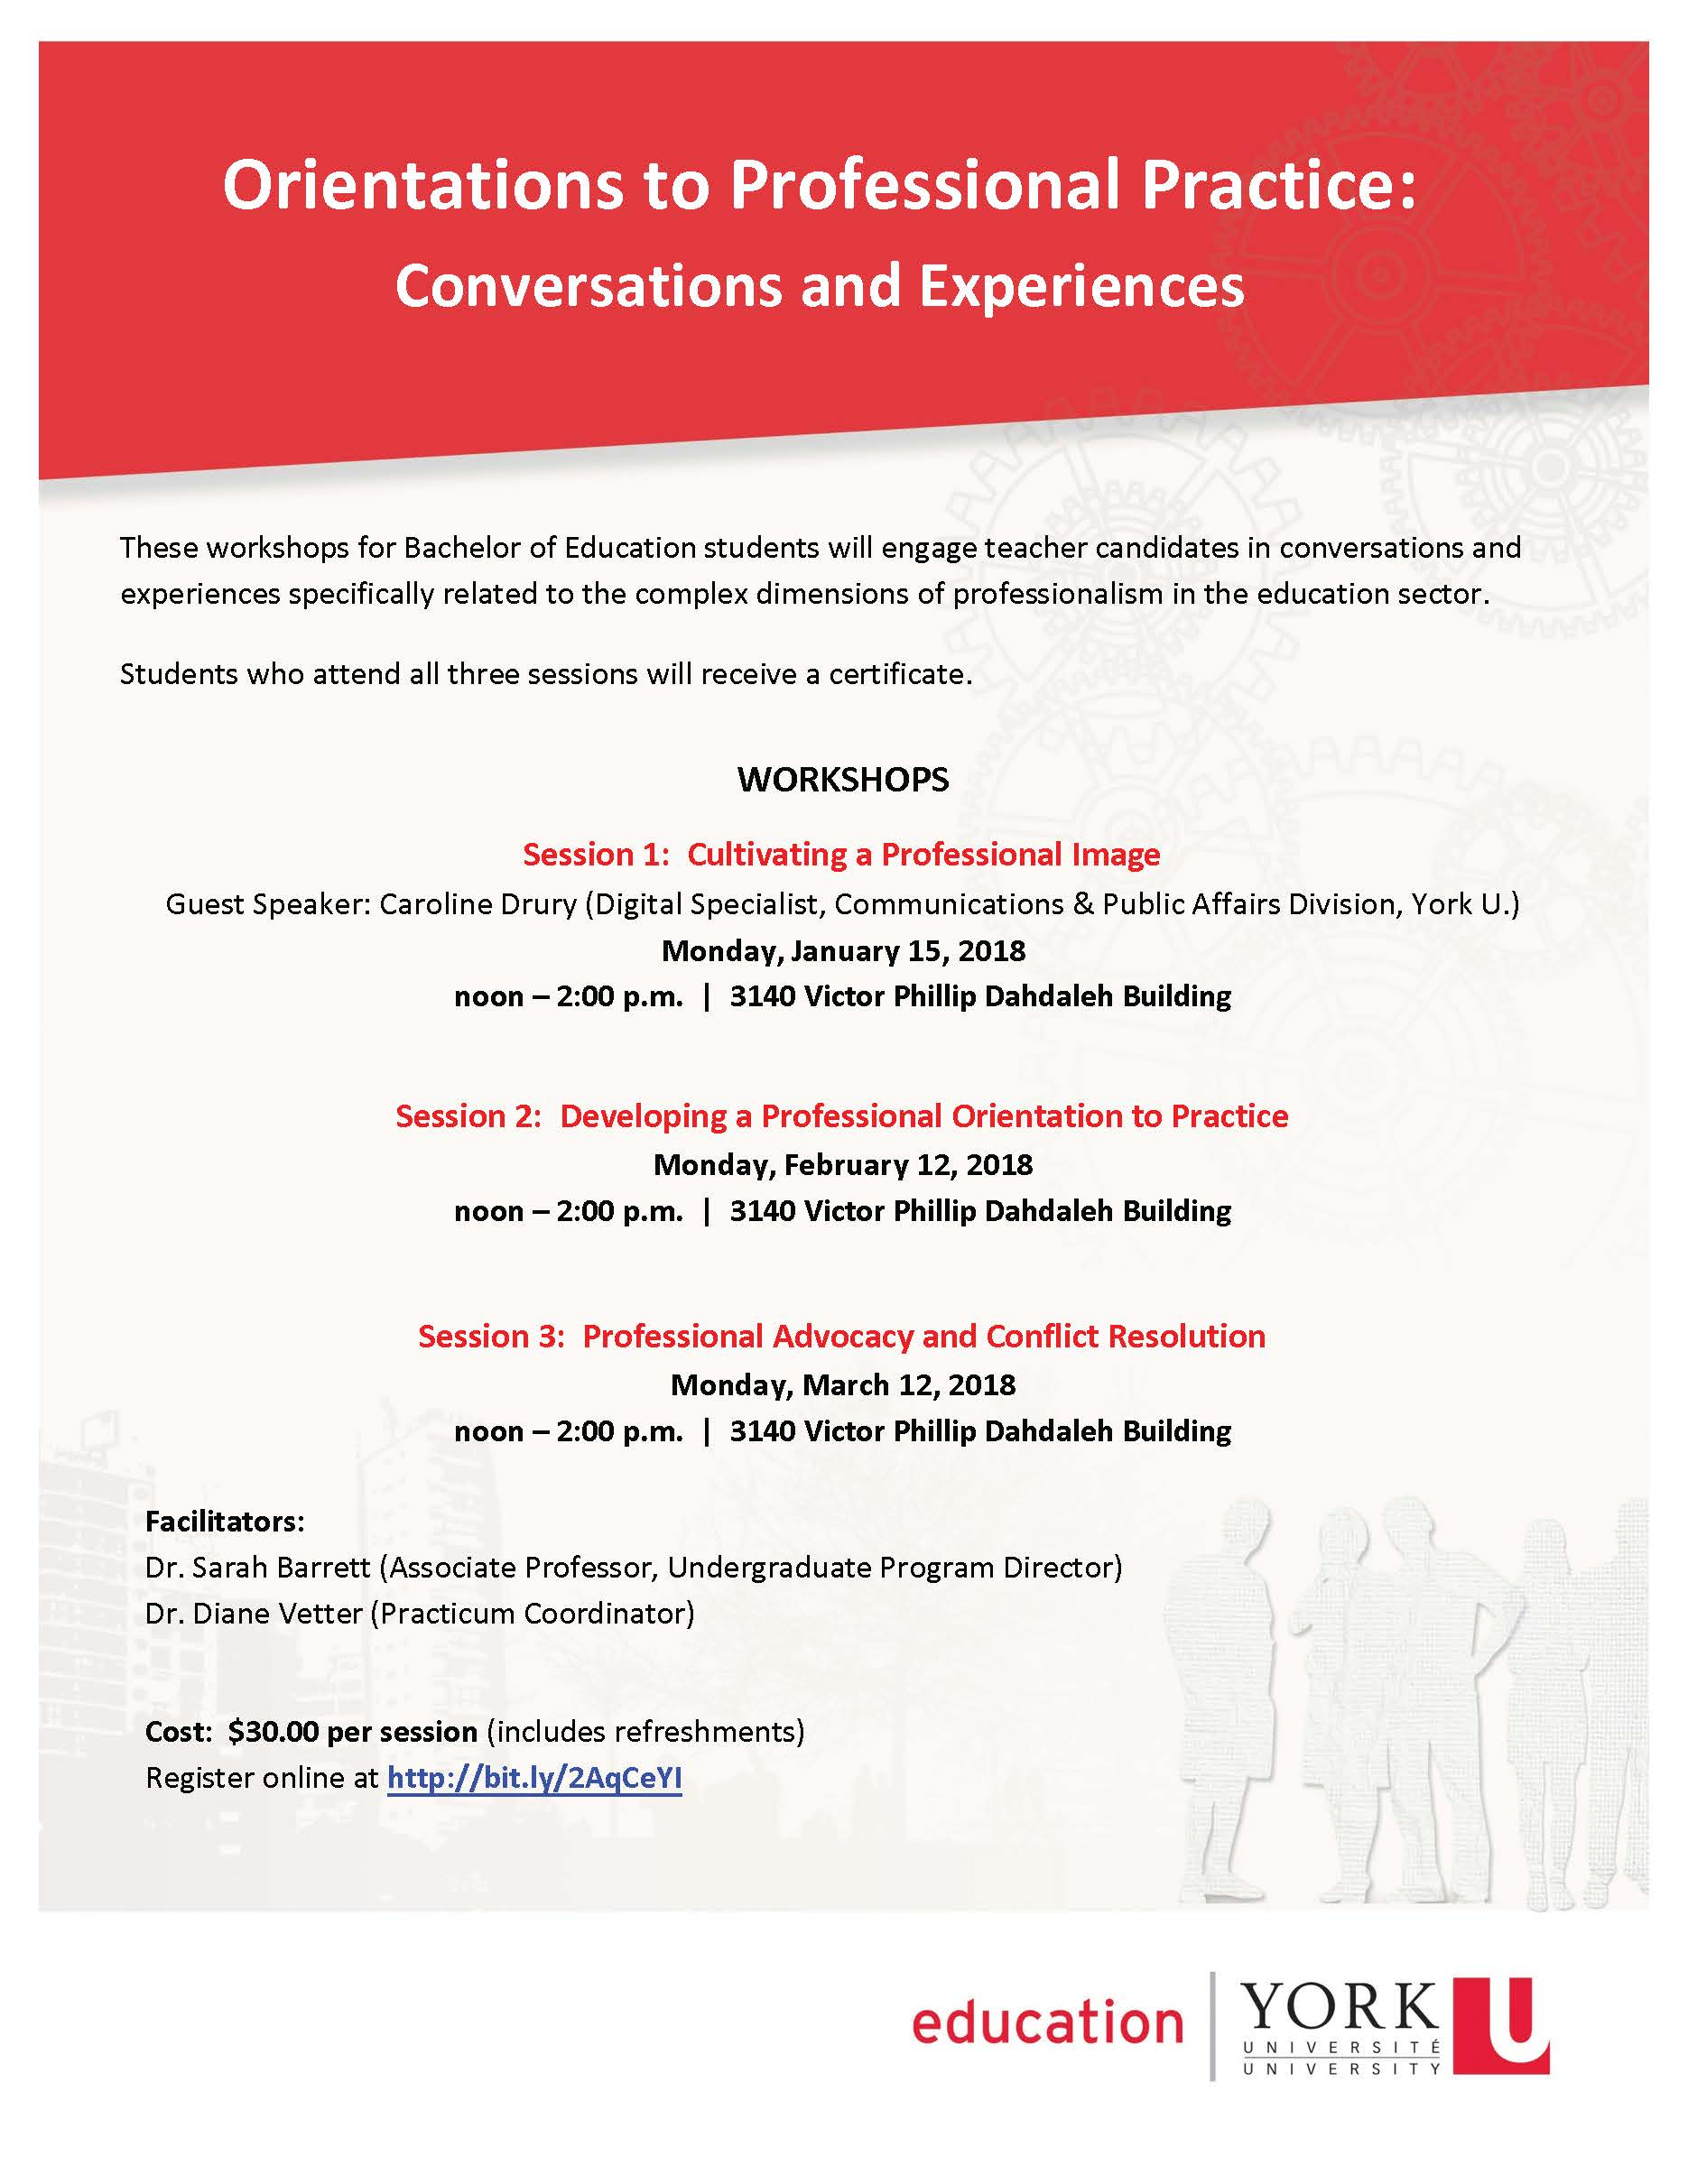 Orientations to Professional Practice: Conversations and Experiences @ 3140 Victor Phillip Dahdaleh Building